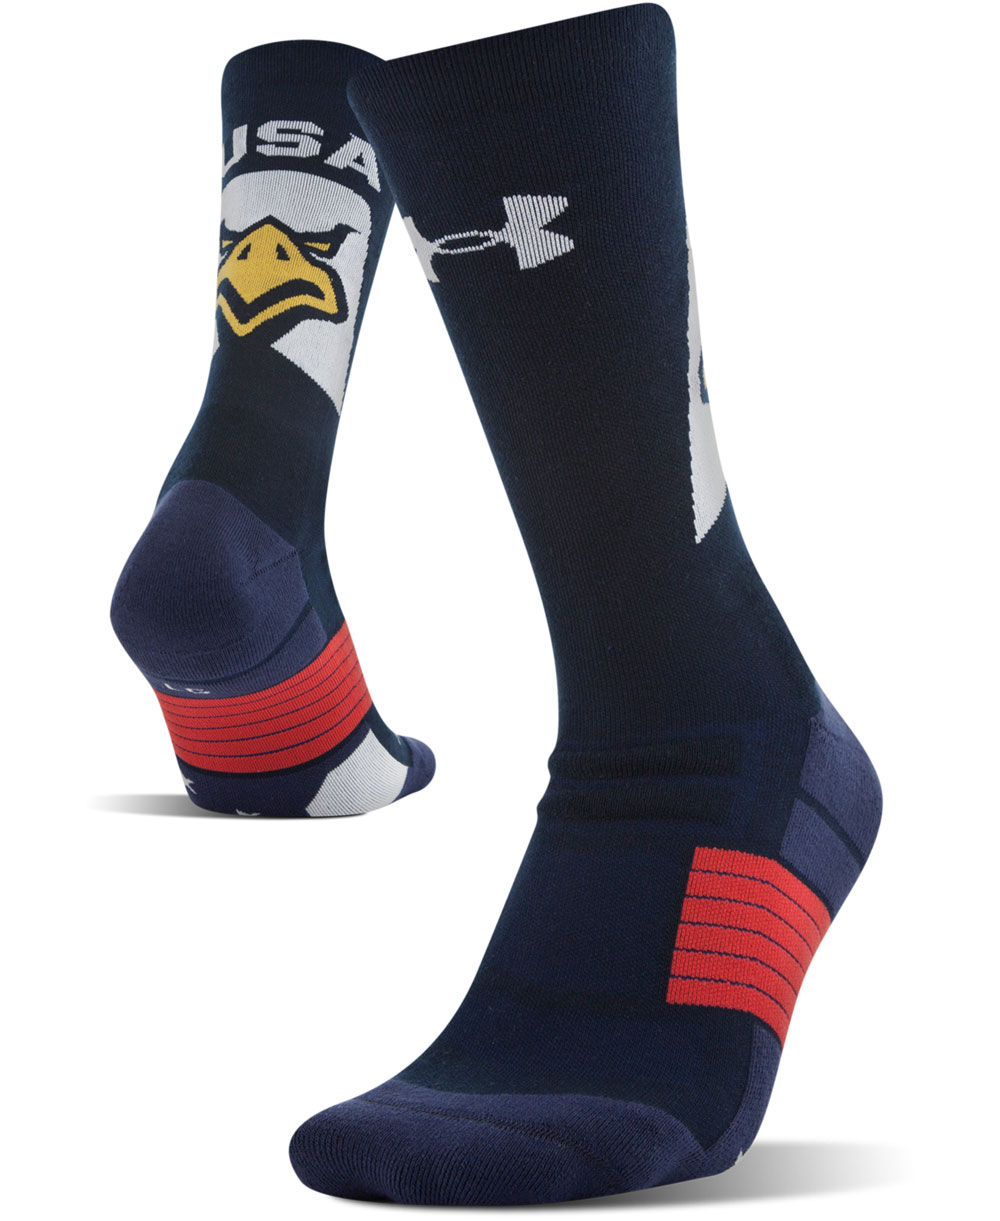 Men's Socks Americana Crew Eclipse Navy